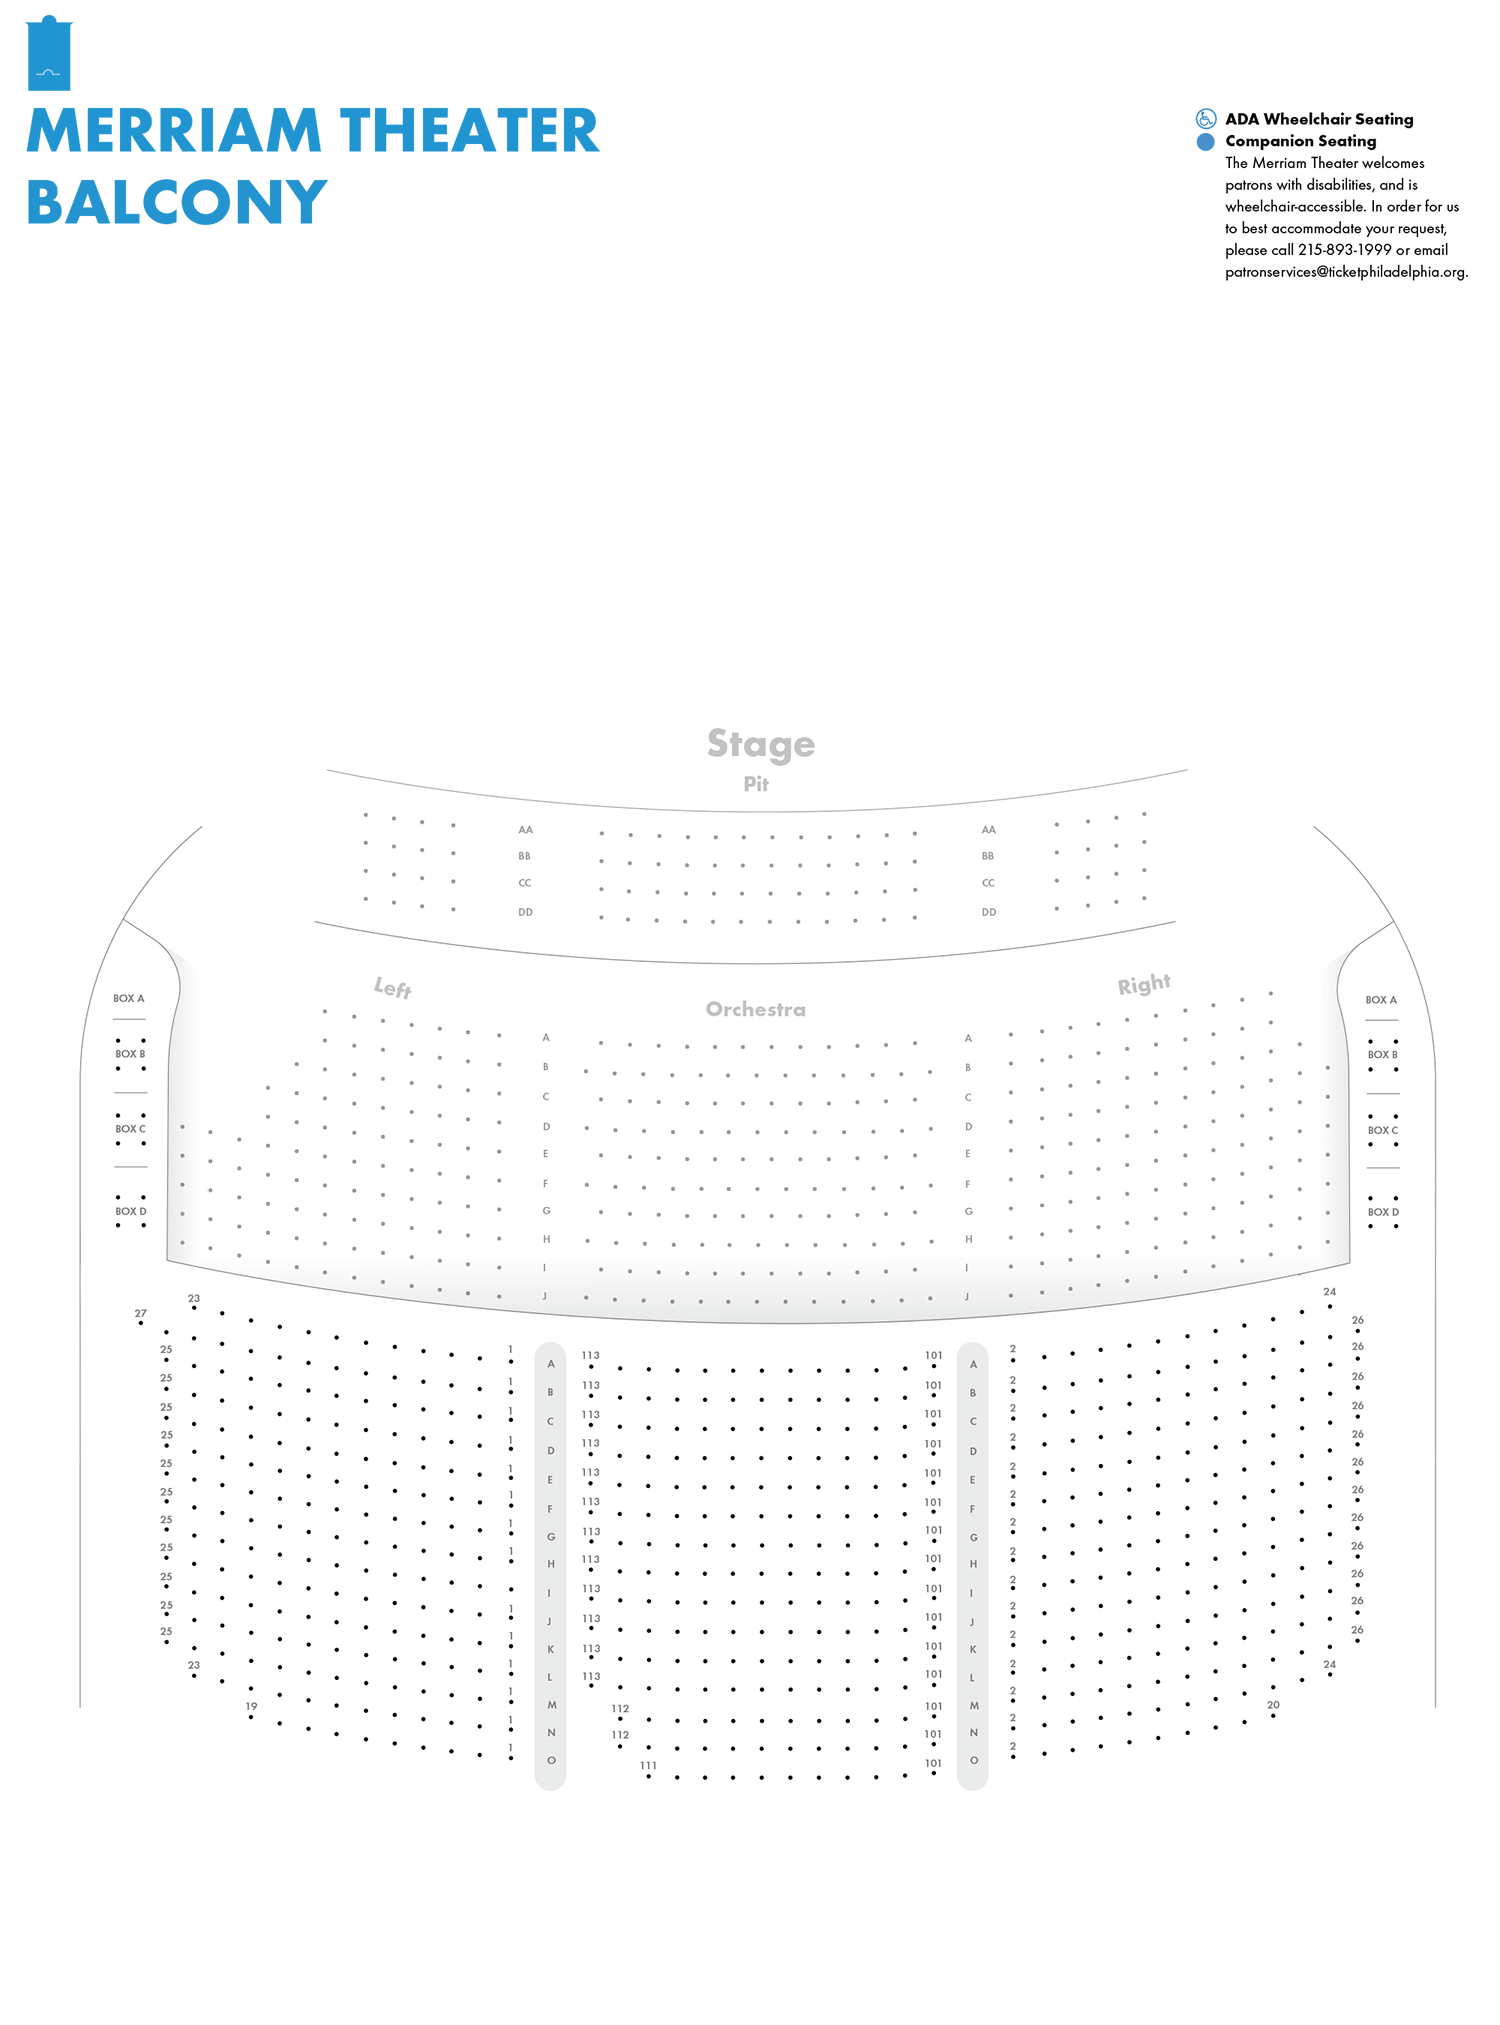 Merriam Theater Balcony Seating Chart